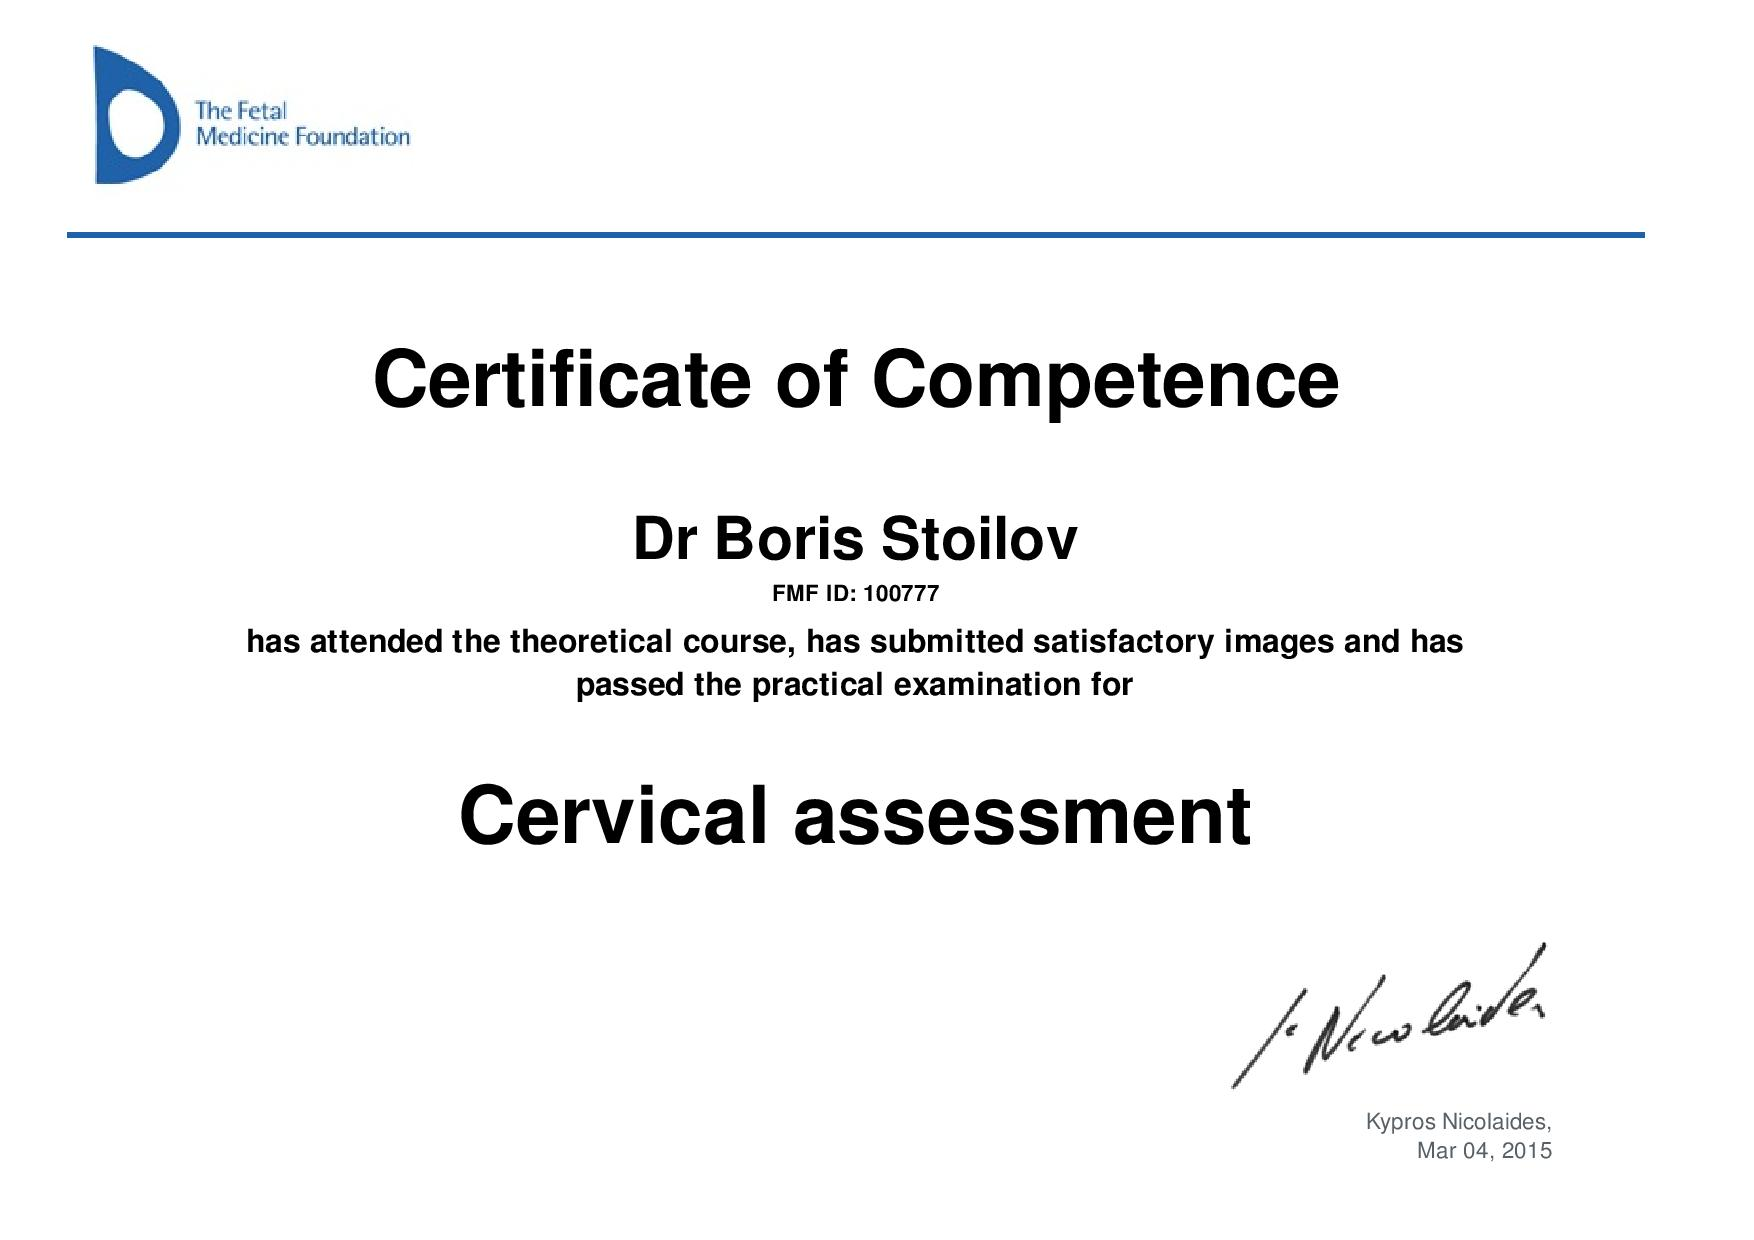 Certificate of competence in Cervical assessment